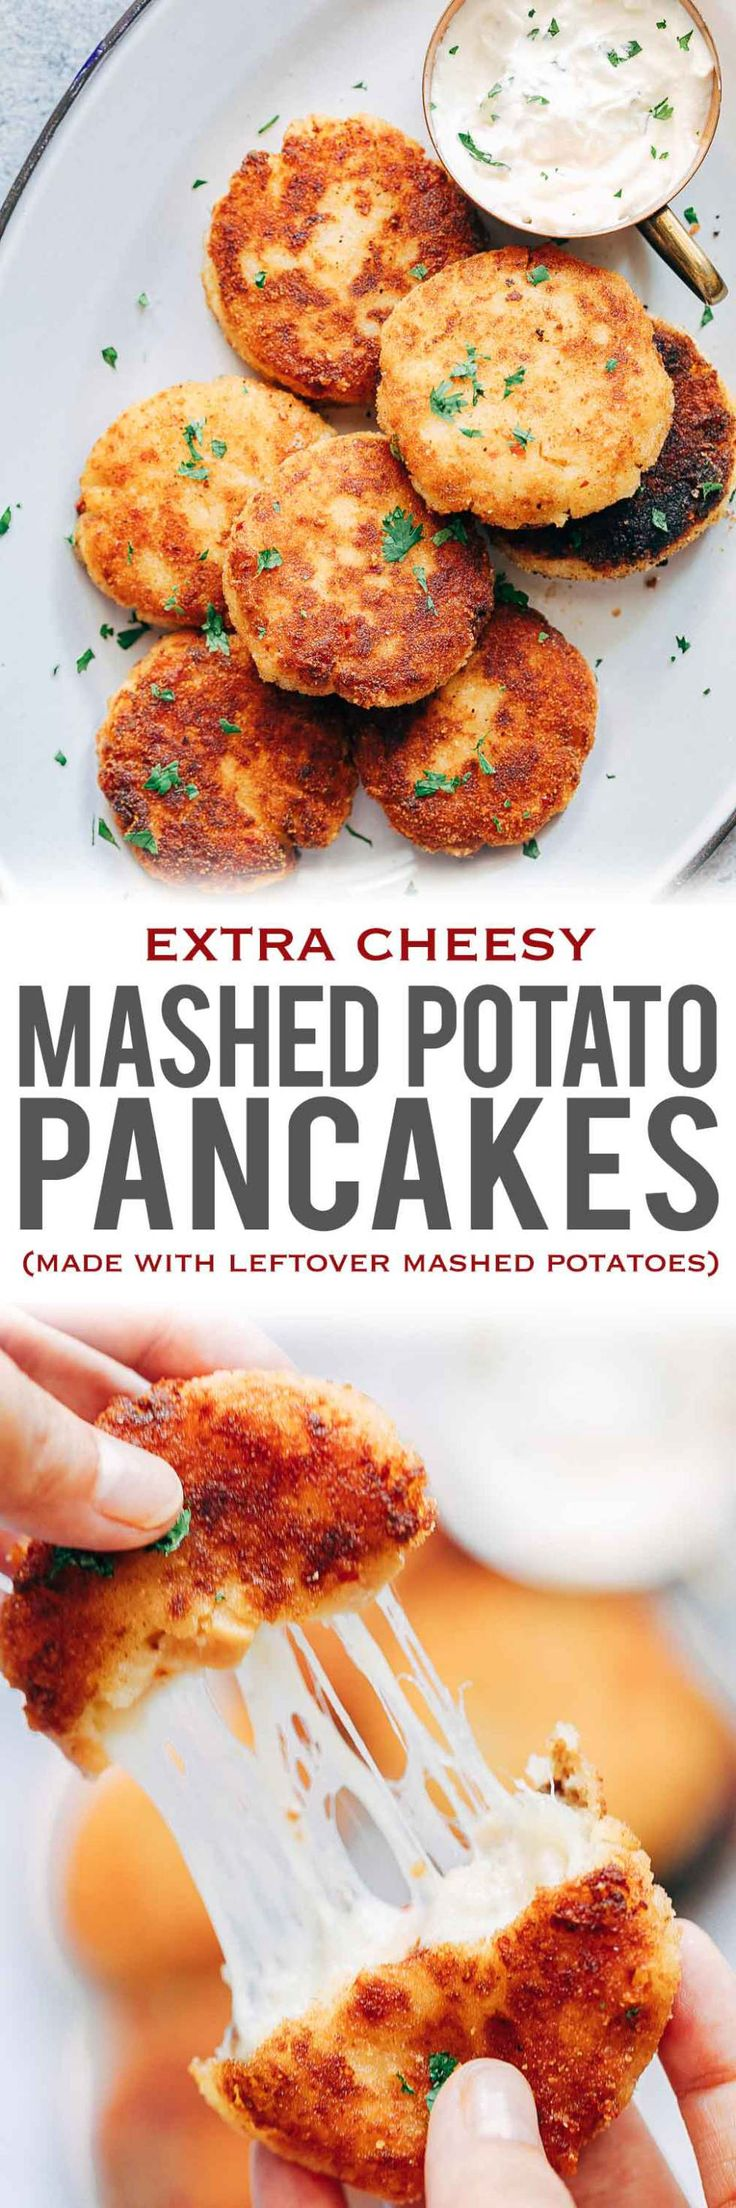 Leftover Mashed Potato Ham Pancakes are the best way to use up extra mashed potatoes after thanksgiving or christmas for a delicious, cheesy appetiser that everyone will go crazy for! These are like patties, cutlets or cheesy cakes and taste amazing served with sour cream. Easy, shallow fried and the best idea! My Food Story #hampancakes #mashpotatoes #leftoverrecipes